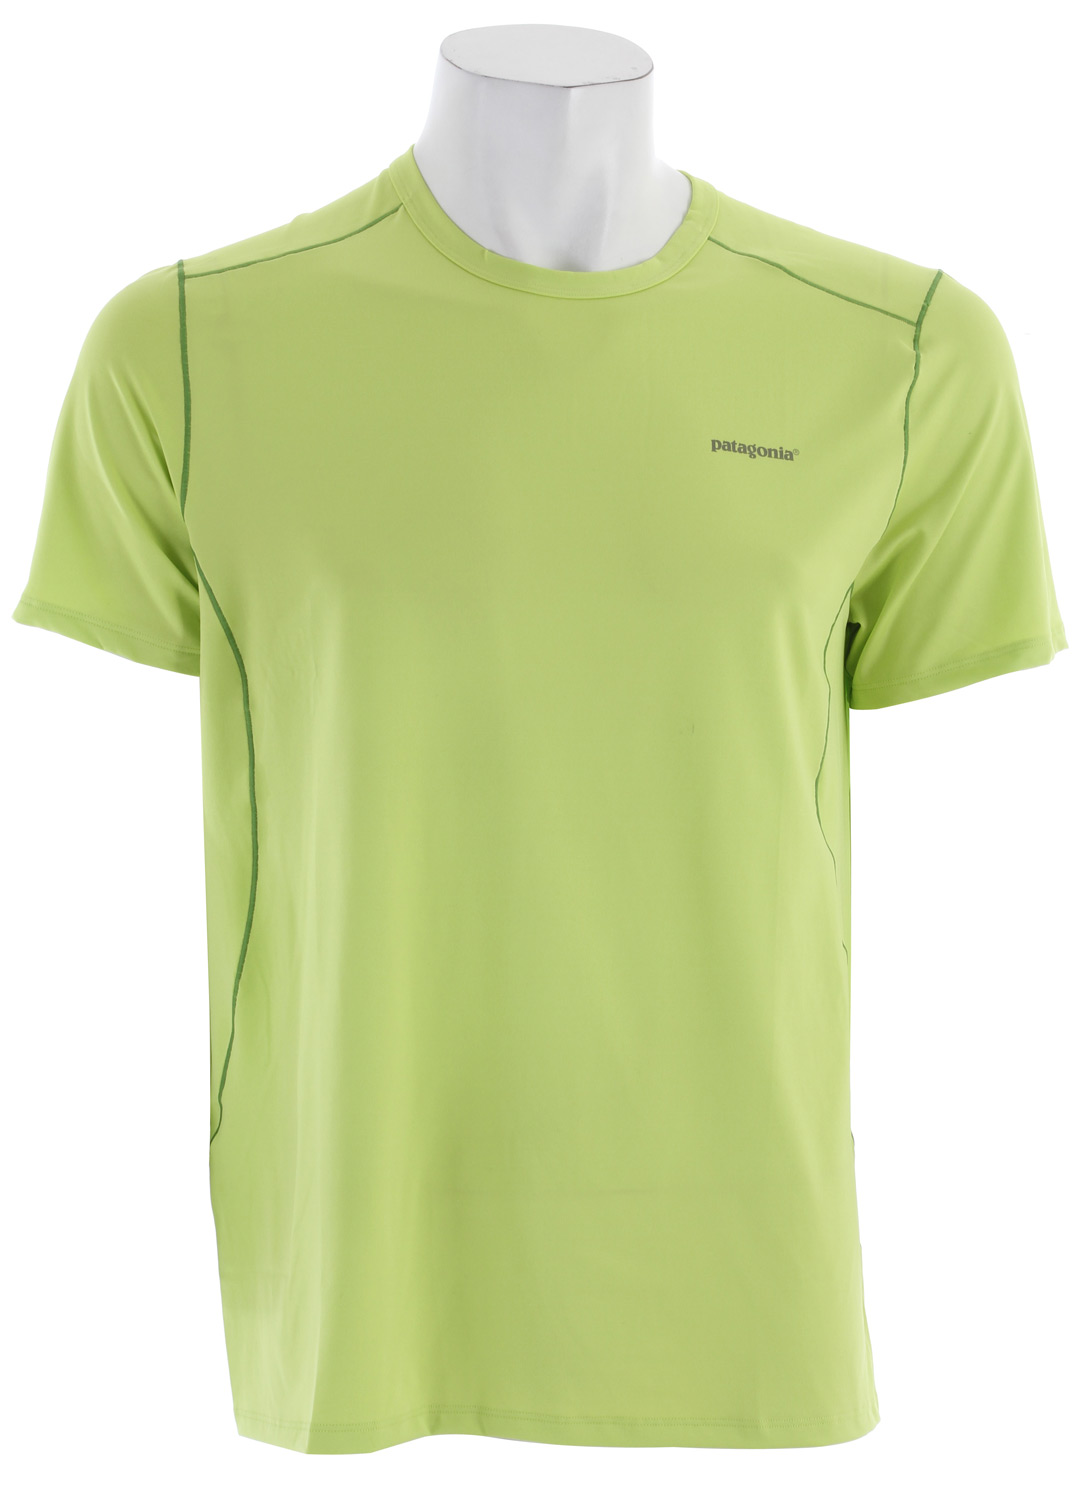 Our stretchiest synthetic baselayer keeps you dry and cool in warm conditions. fabriC: 5.1-oz 84% polyester/16% spandex jersey, with 50+ UPF sun protection and Gladiodor odor control for the garmentKey Features of the Patagonia Capilene 1 Sw Stretch T-Shirt: Superior stretch and moisture managemen; with 50+ UPF sun protection Durable smooth jersey face is comfortable against the skin Self-fabric crew neck Seams offset for maximum mobility with minimum chafe Reflective heat-transfer logo Machine-wash cold, tumble dry at low temperature Slim fit - $16.95